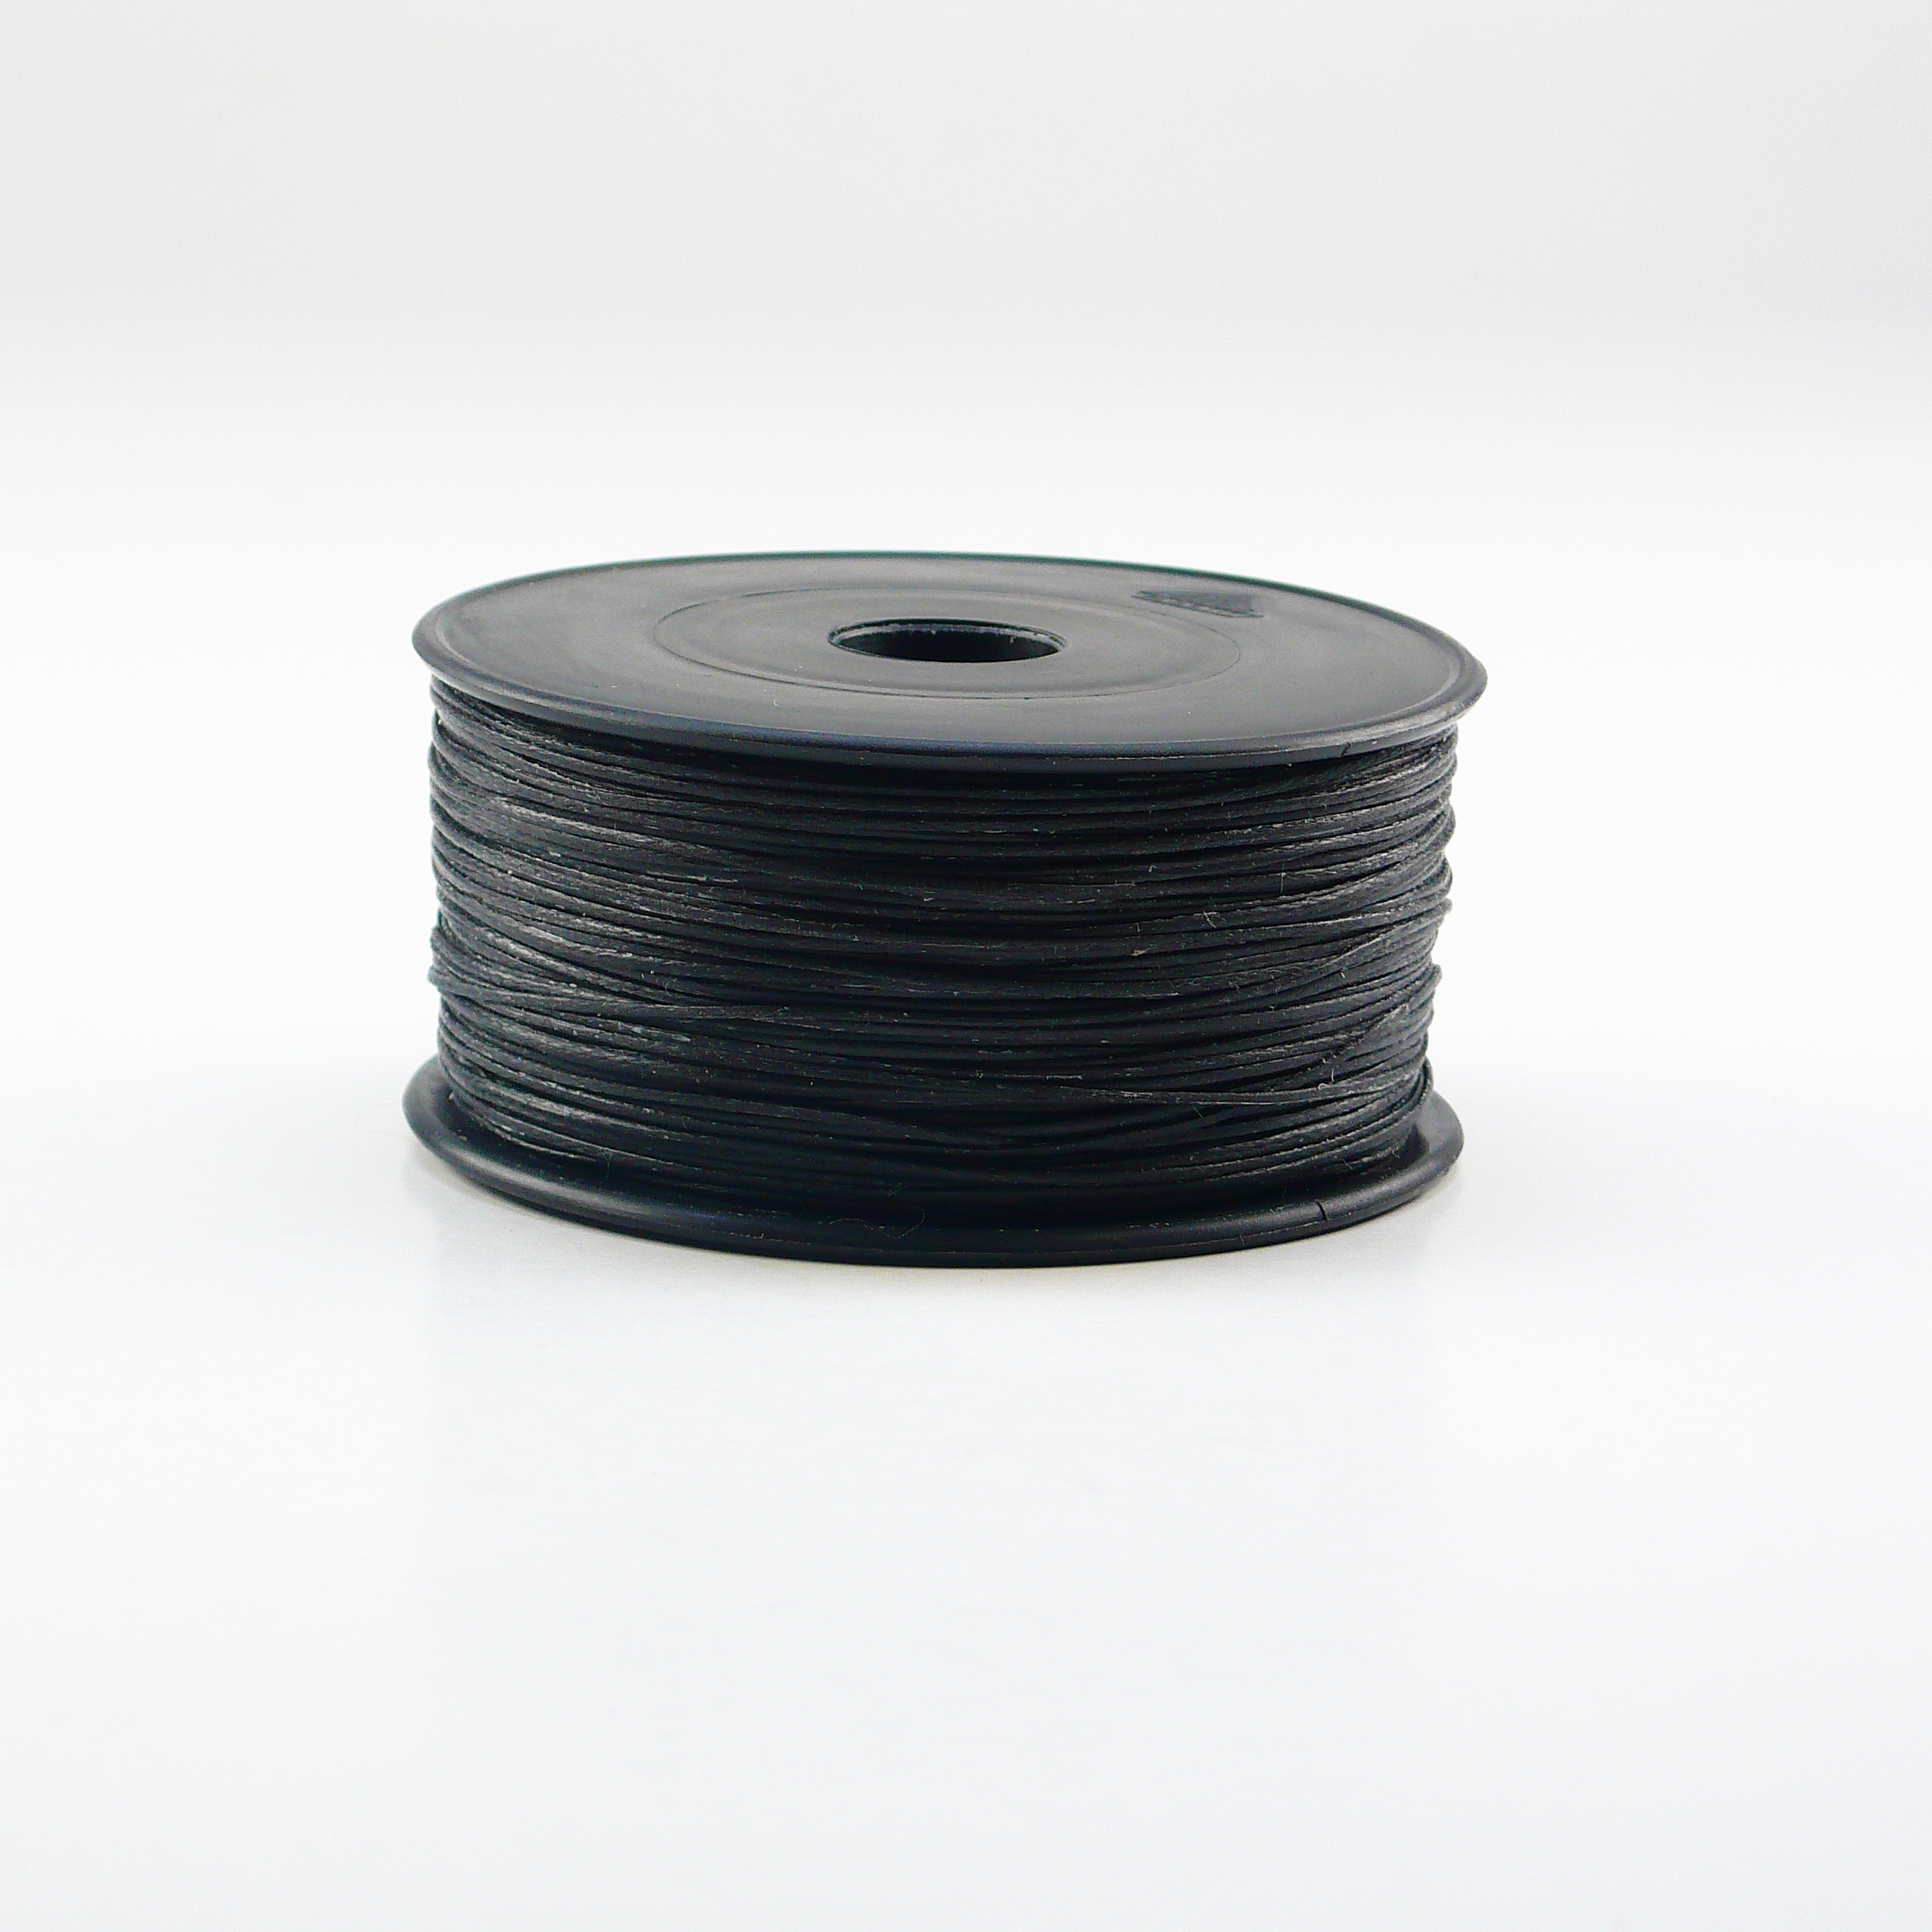 Hand sewing braided and waxed Nylon thread Neverstrand MADE IN SWITZERLAND, Nr. 5 spool à 50 g, 130 m appprox, Black